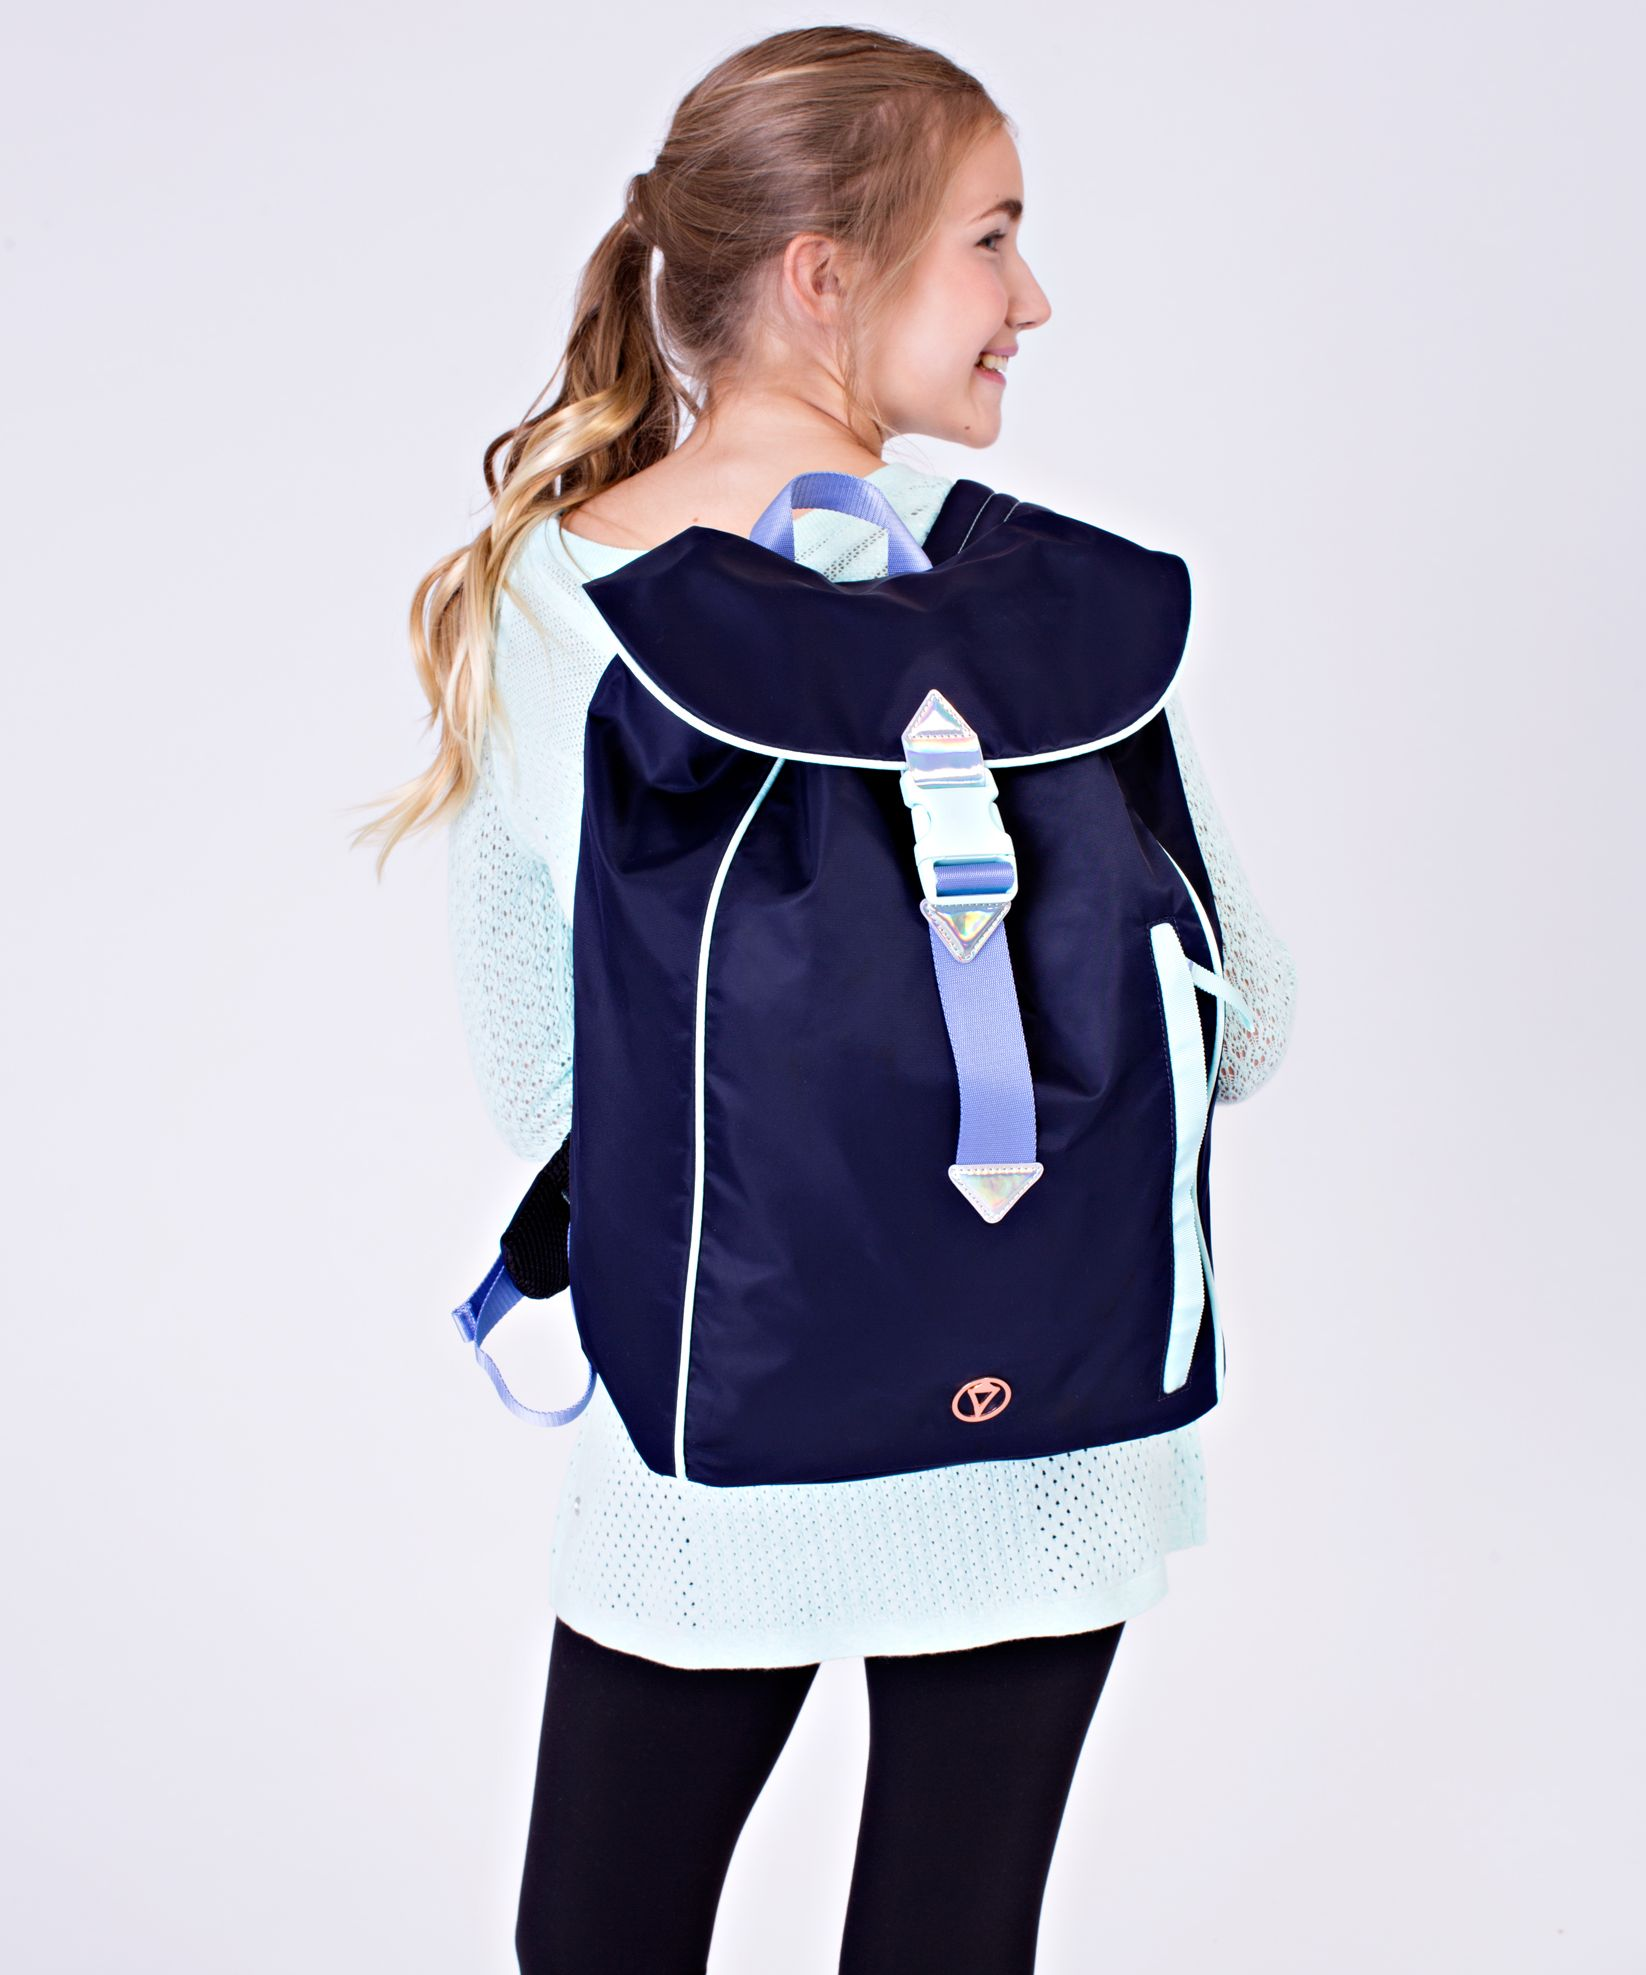 where-to-next-backpack---girls-20l by lululemon